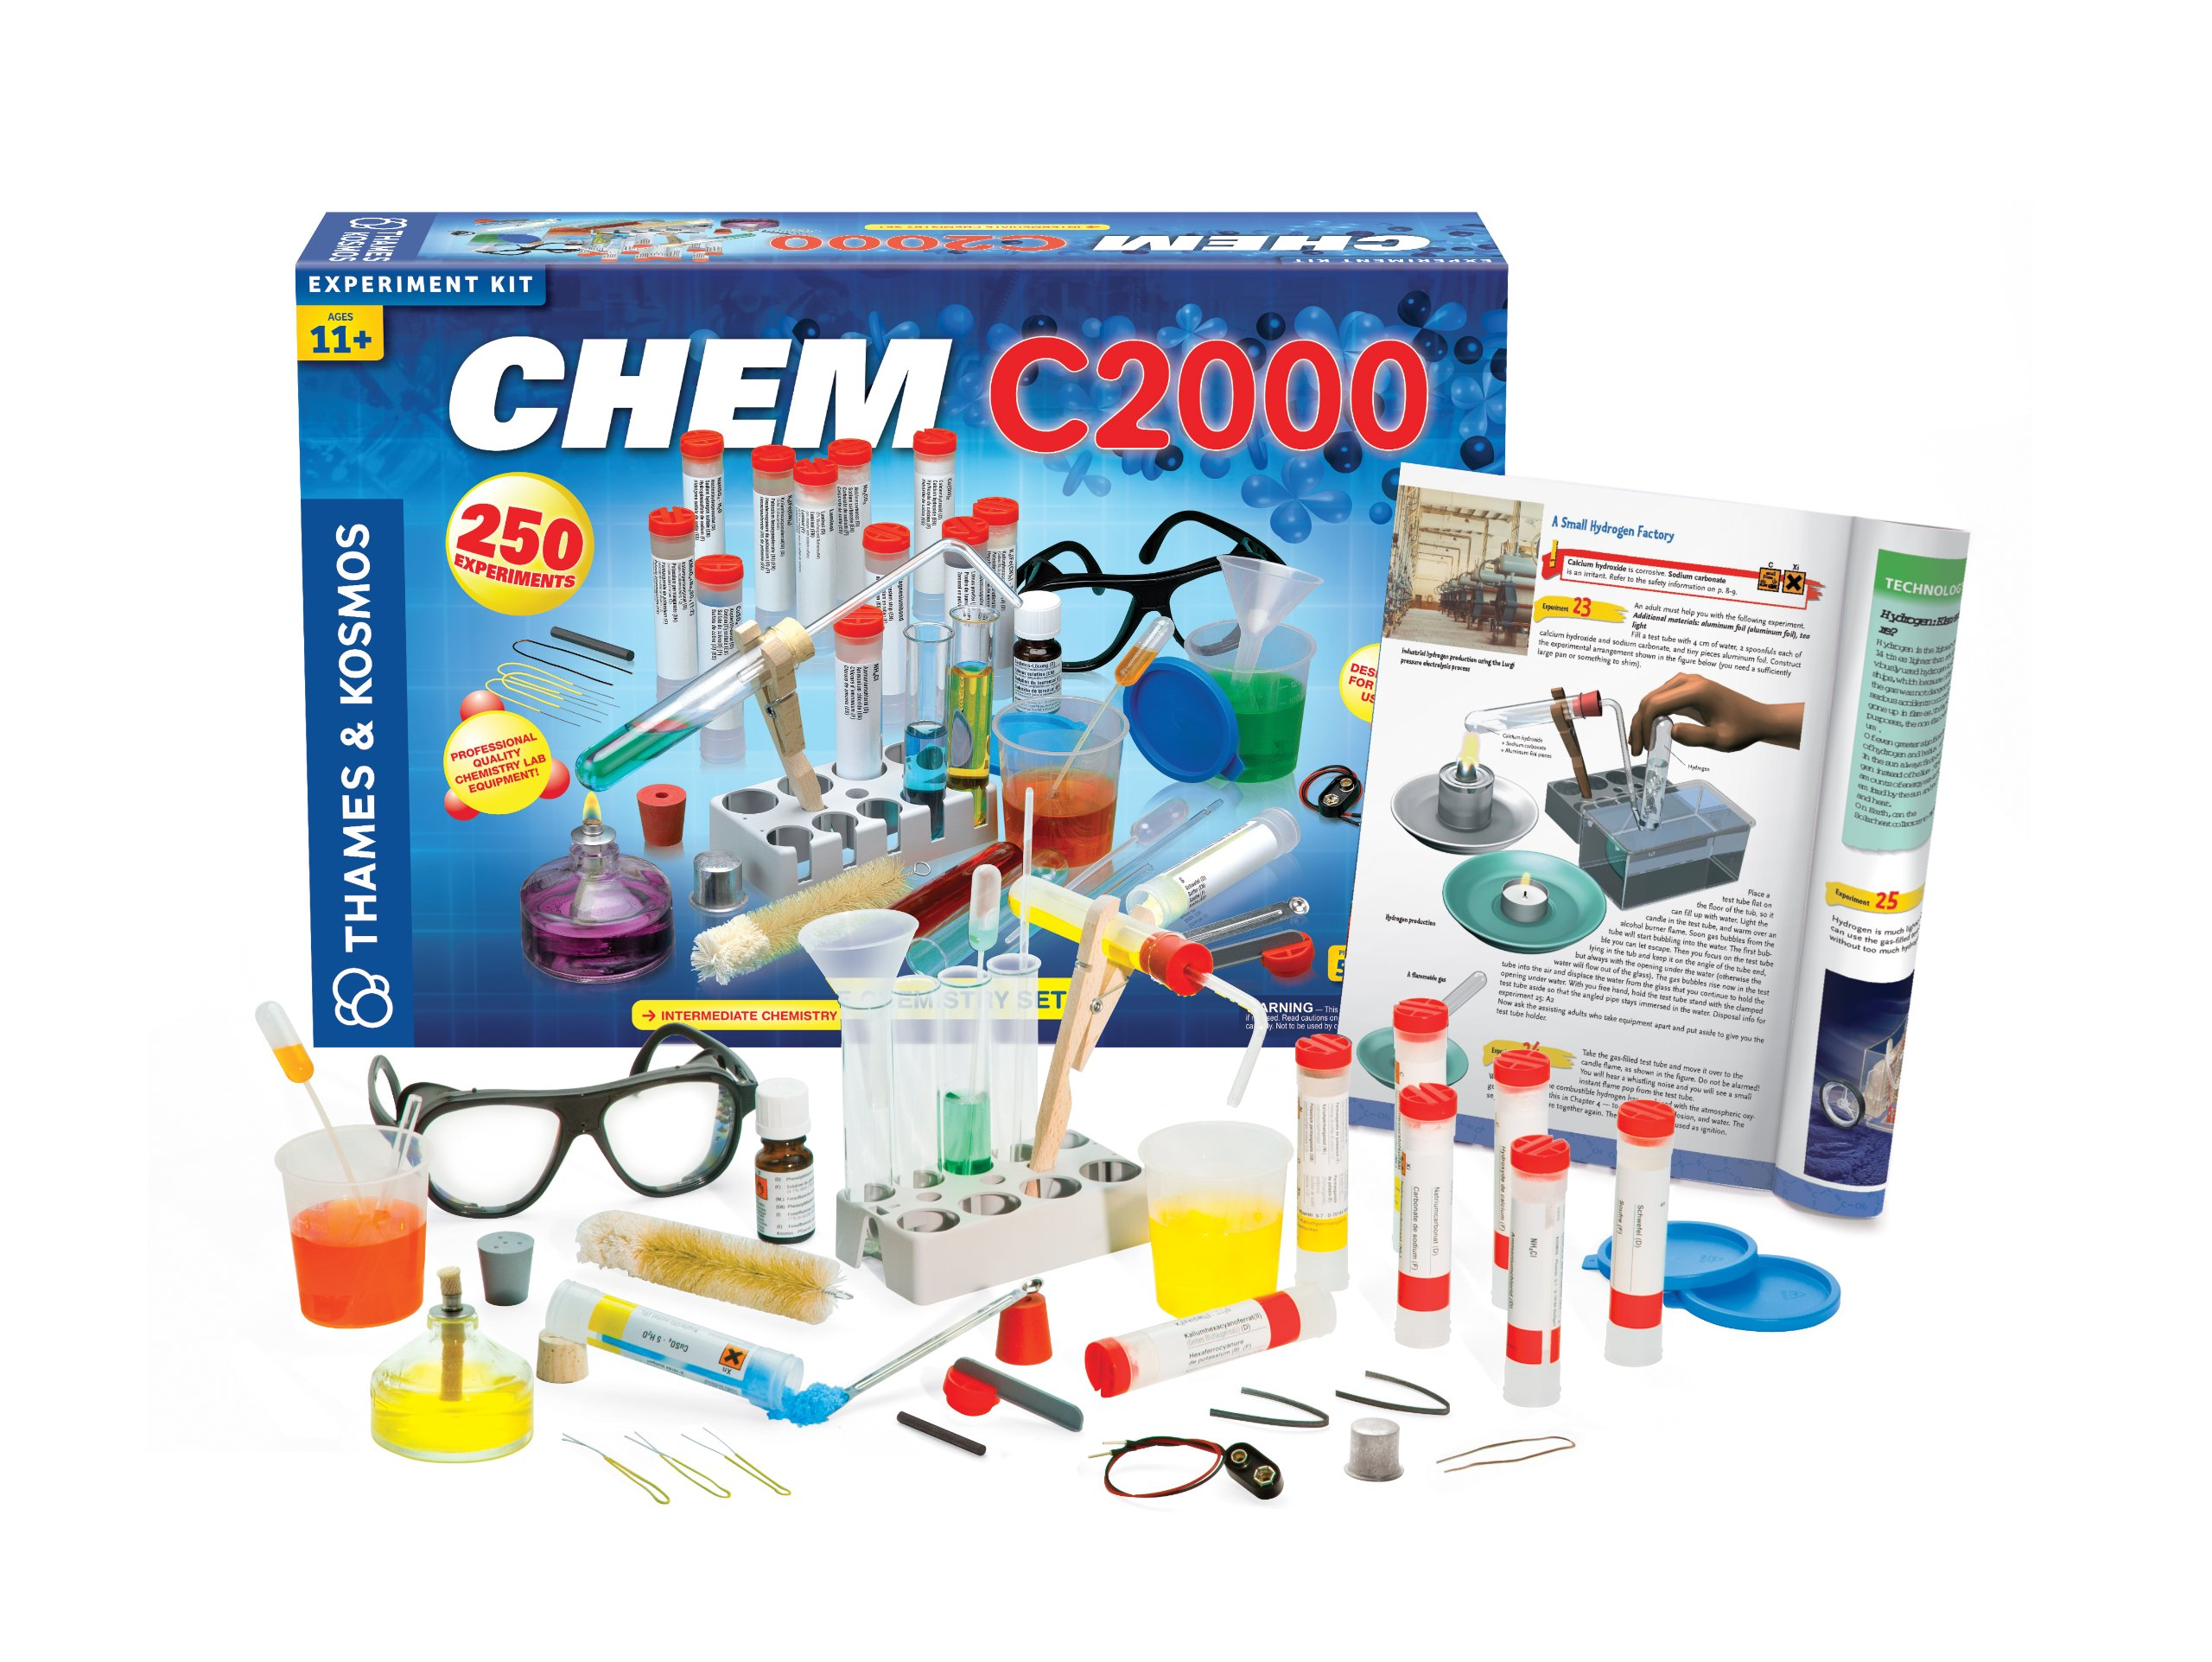 Thames & Kosmos Chem C2000 (V 2.0) Chemistry Set with 250 Experiments and 128 Page Lab Manual, Student Laboratory Quality Instruments & Chemicals by Thames & Kosmos (Image #2)